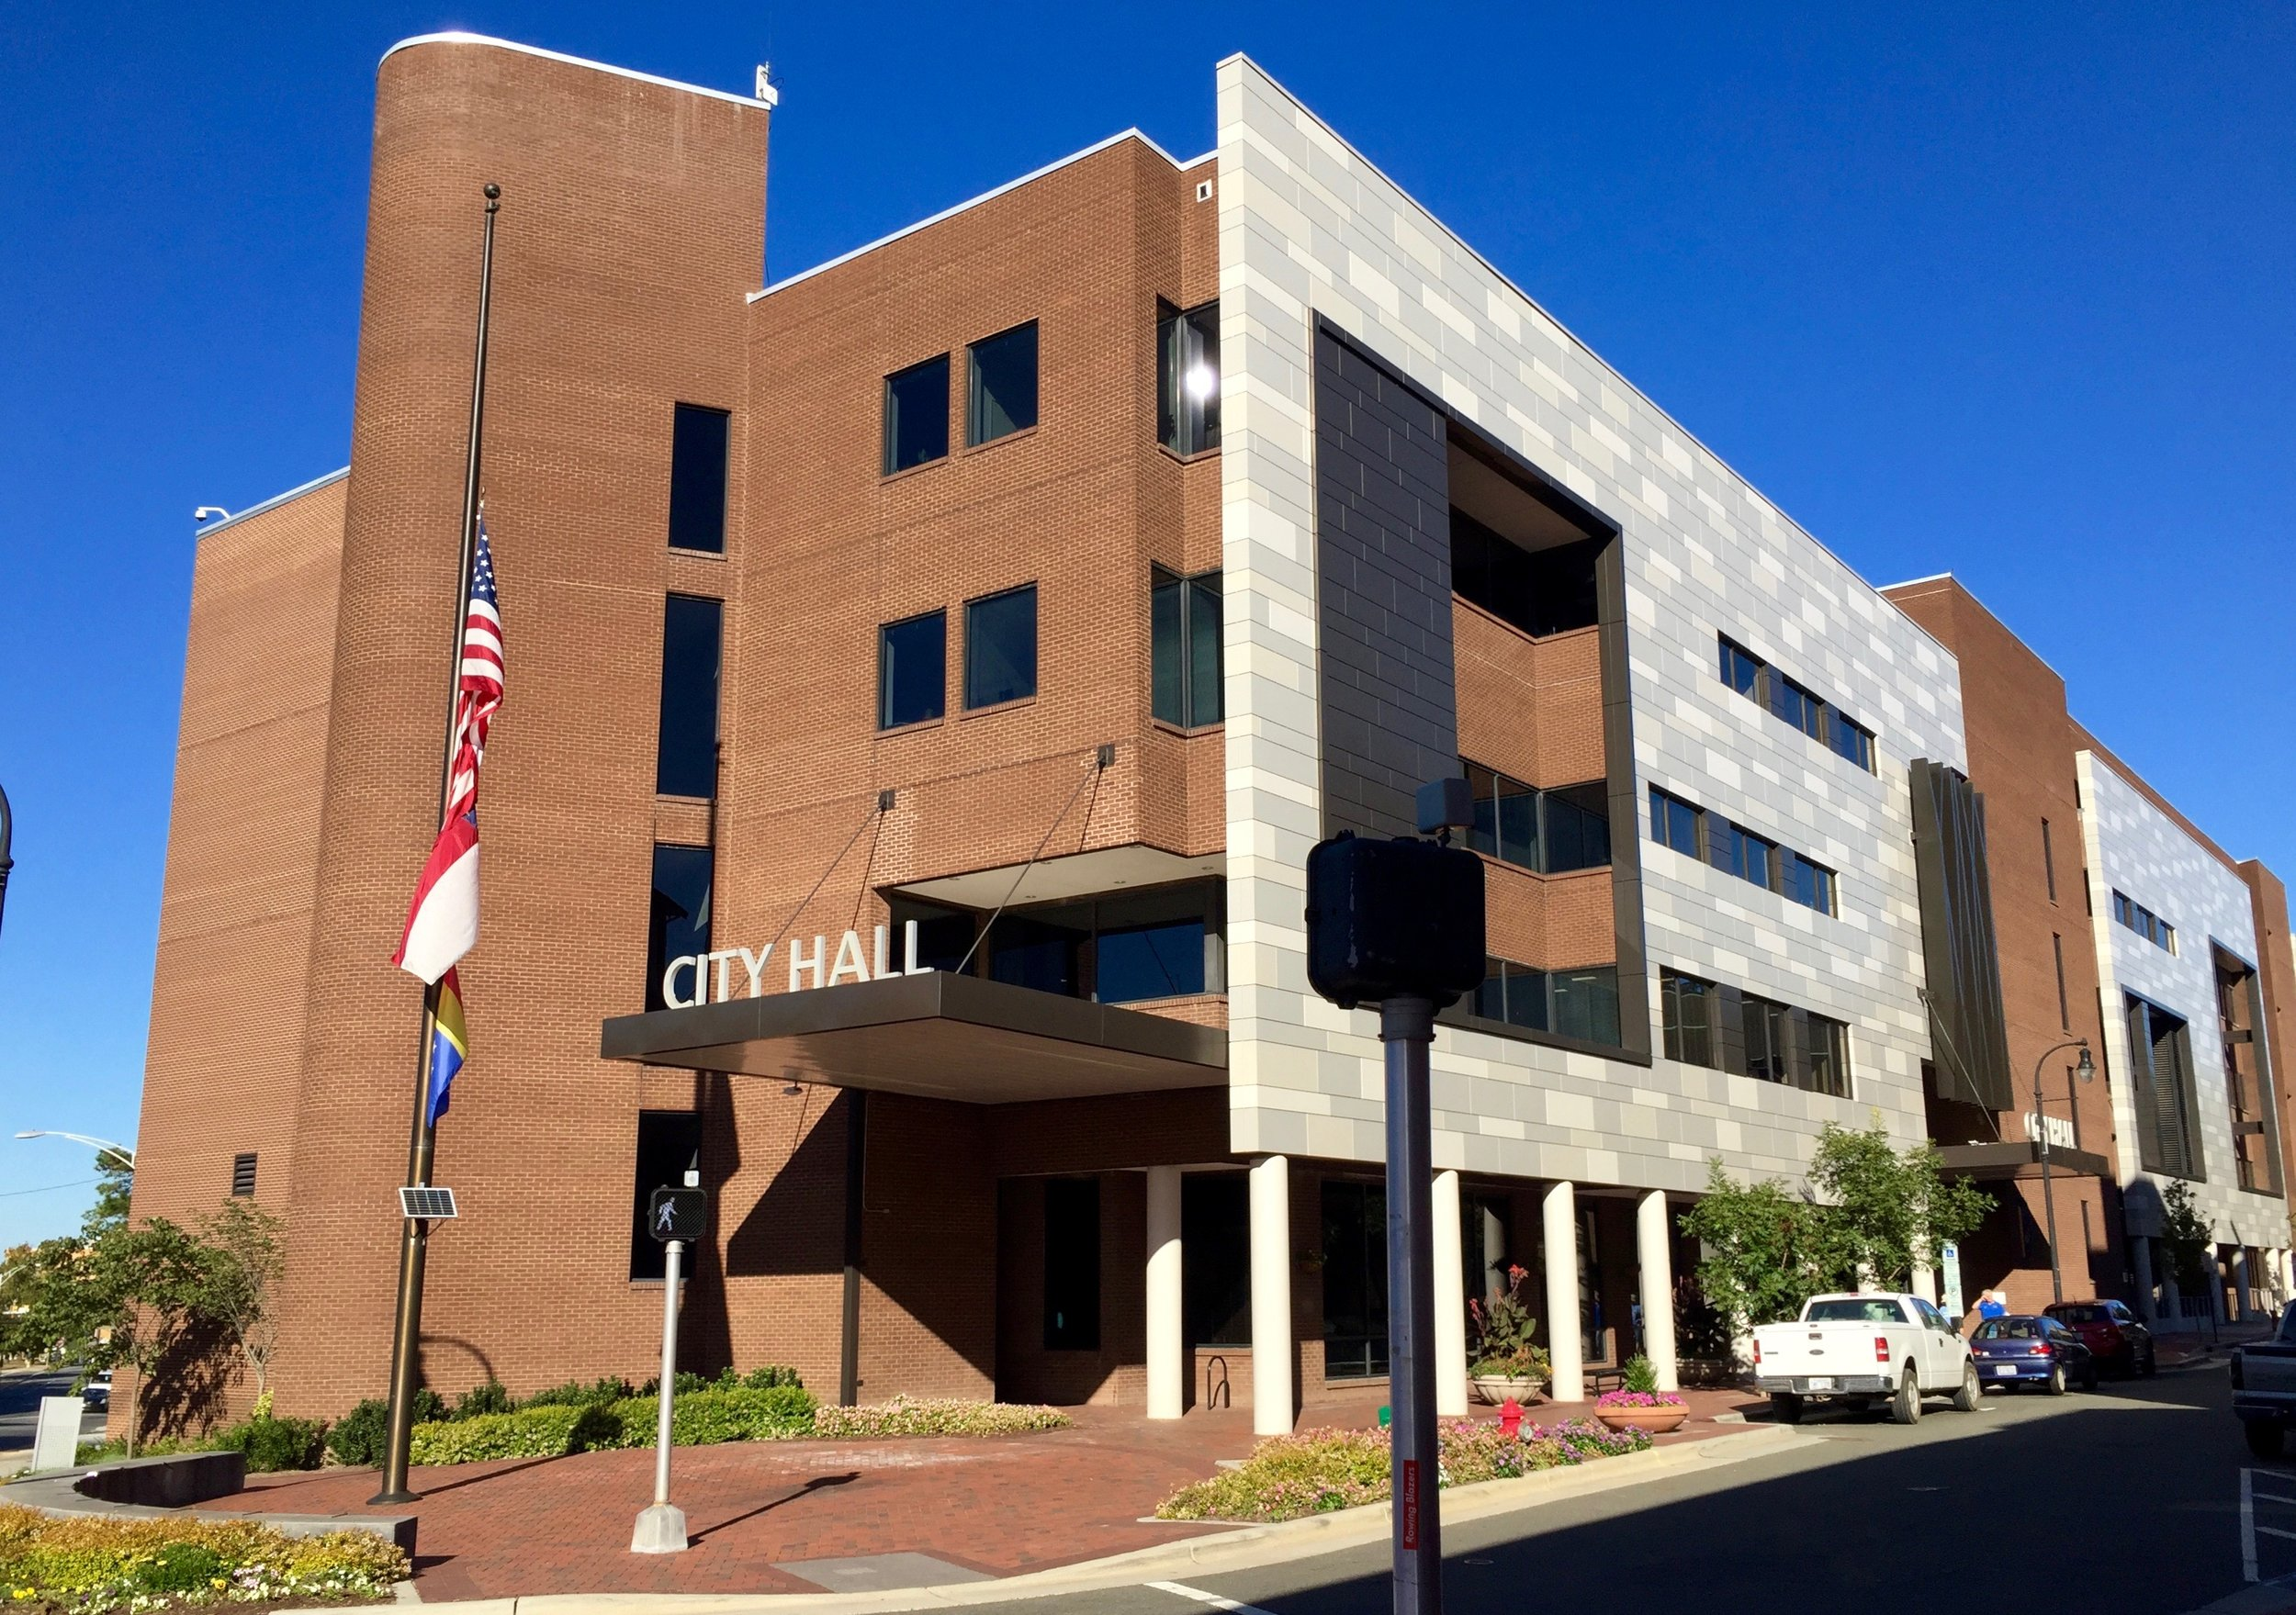 City Hall, located at 101 City Hall Plaza in downtown Durham, is home to the office of the Mayor, among other governmental offices and agencies. Photo by Kyle Sherard.